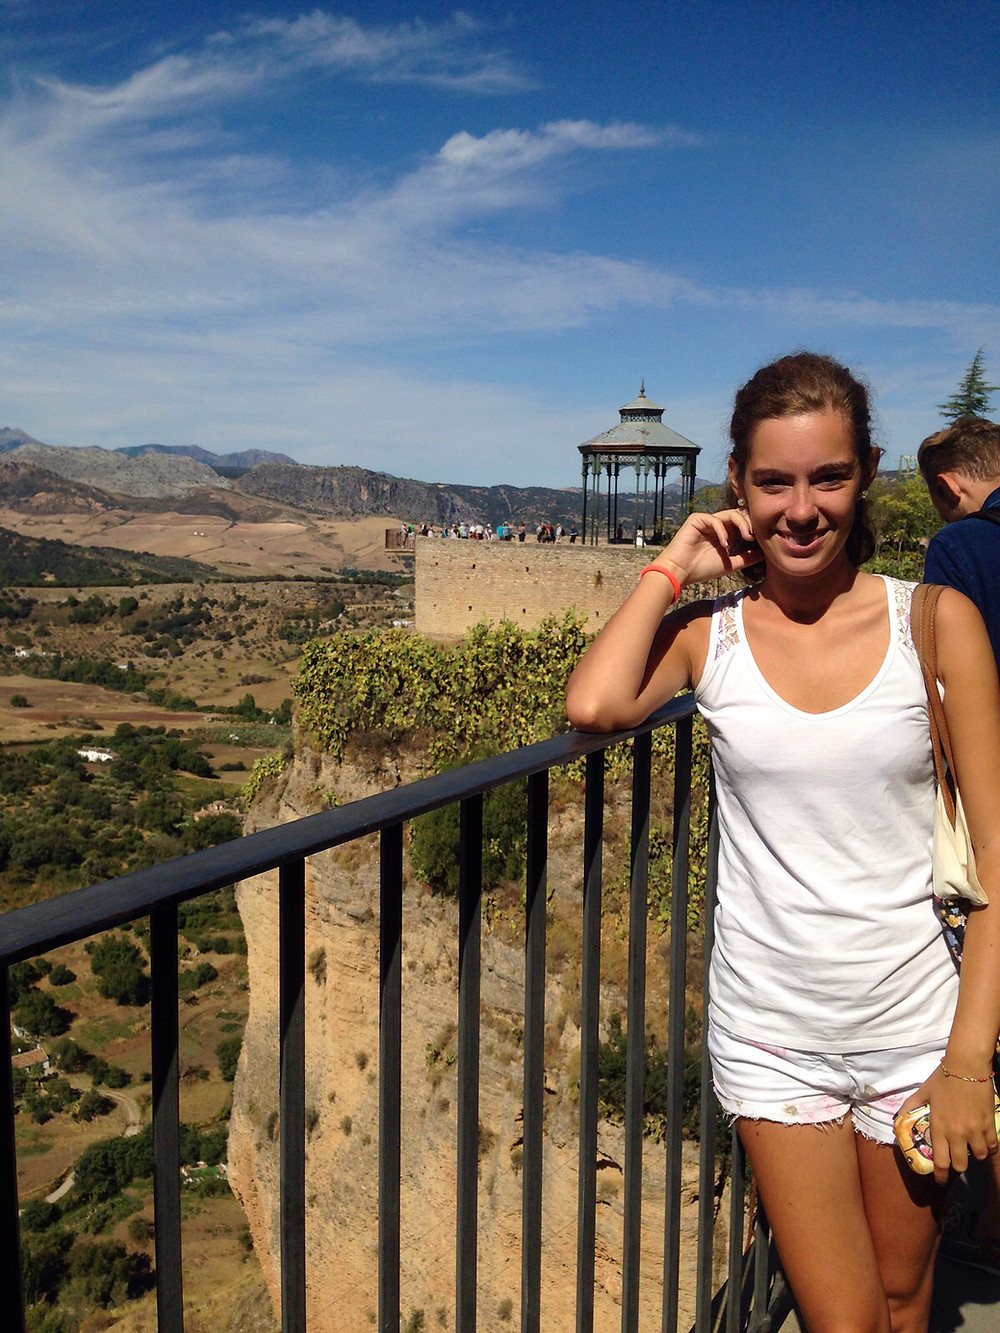 Martina on a trip to Ronda, Spain